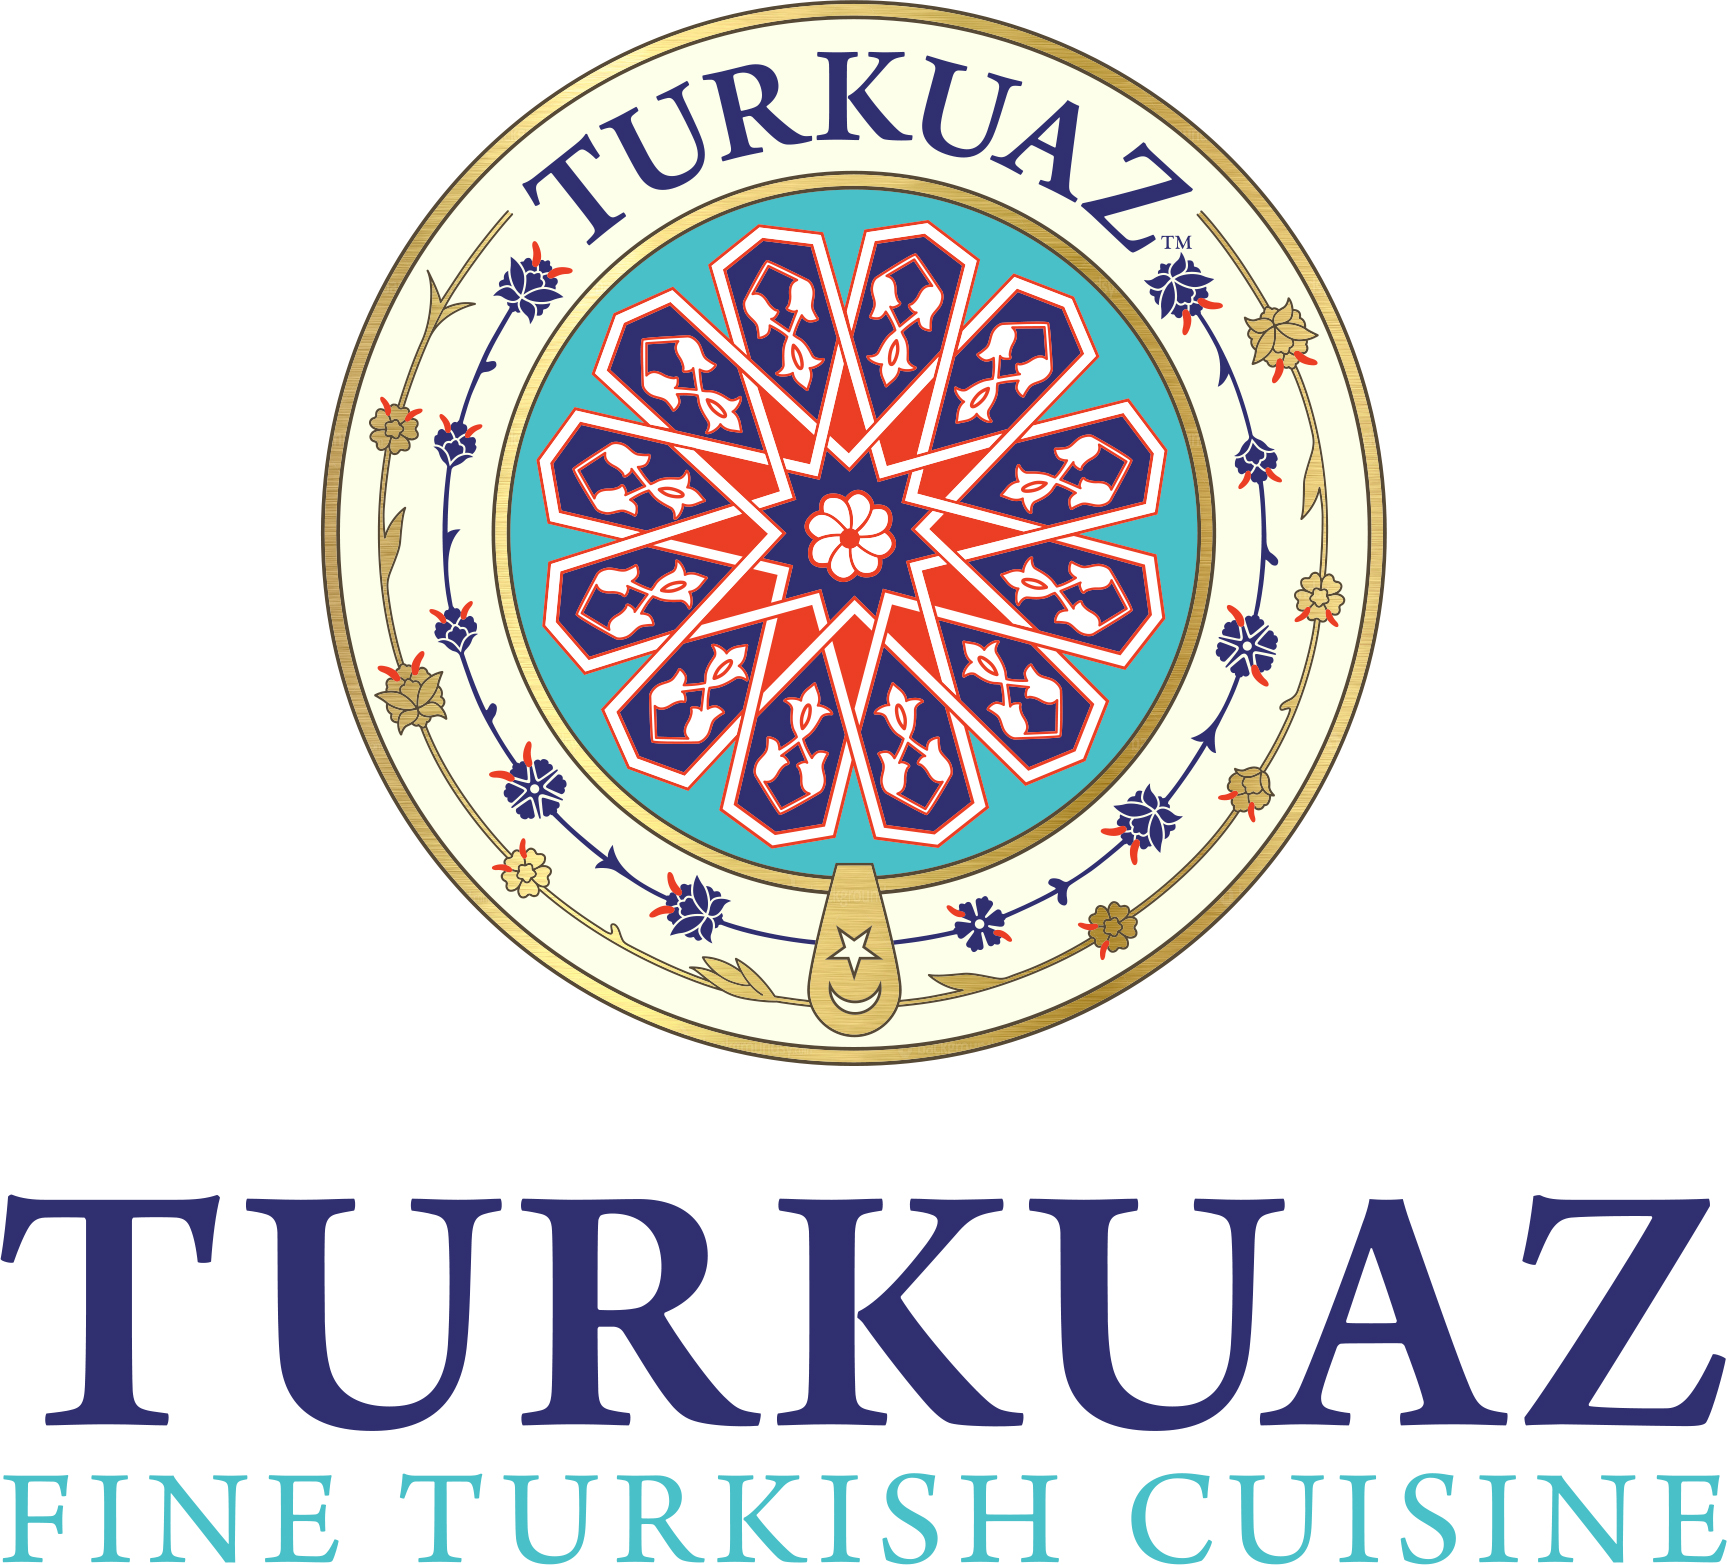 TURKUAZ RESTAURANT